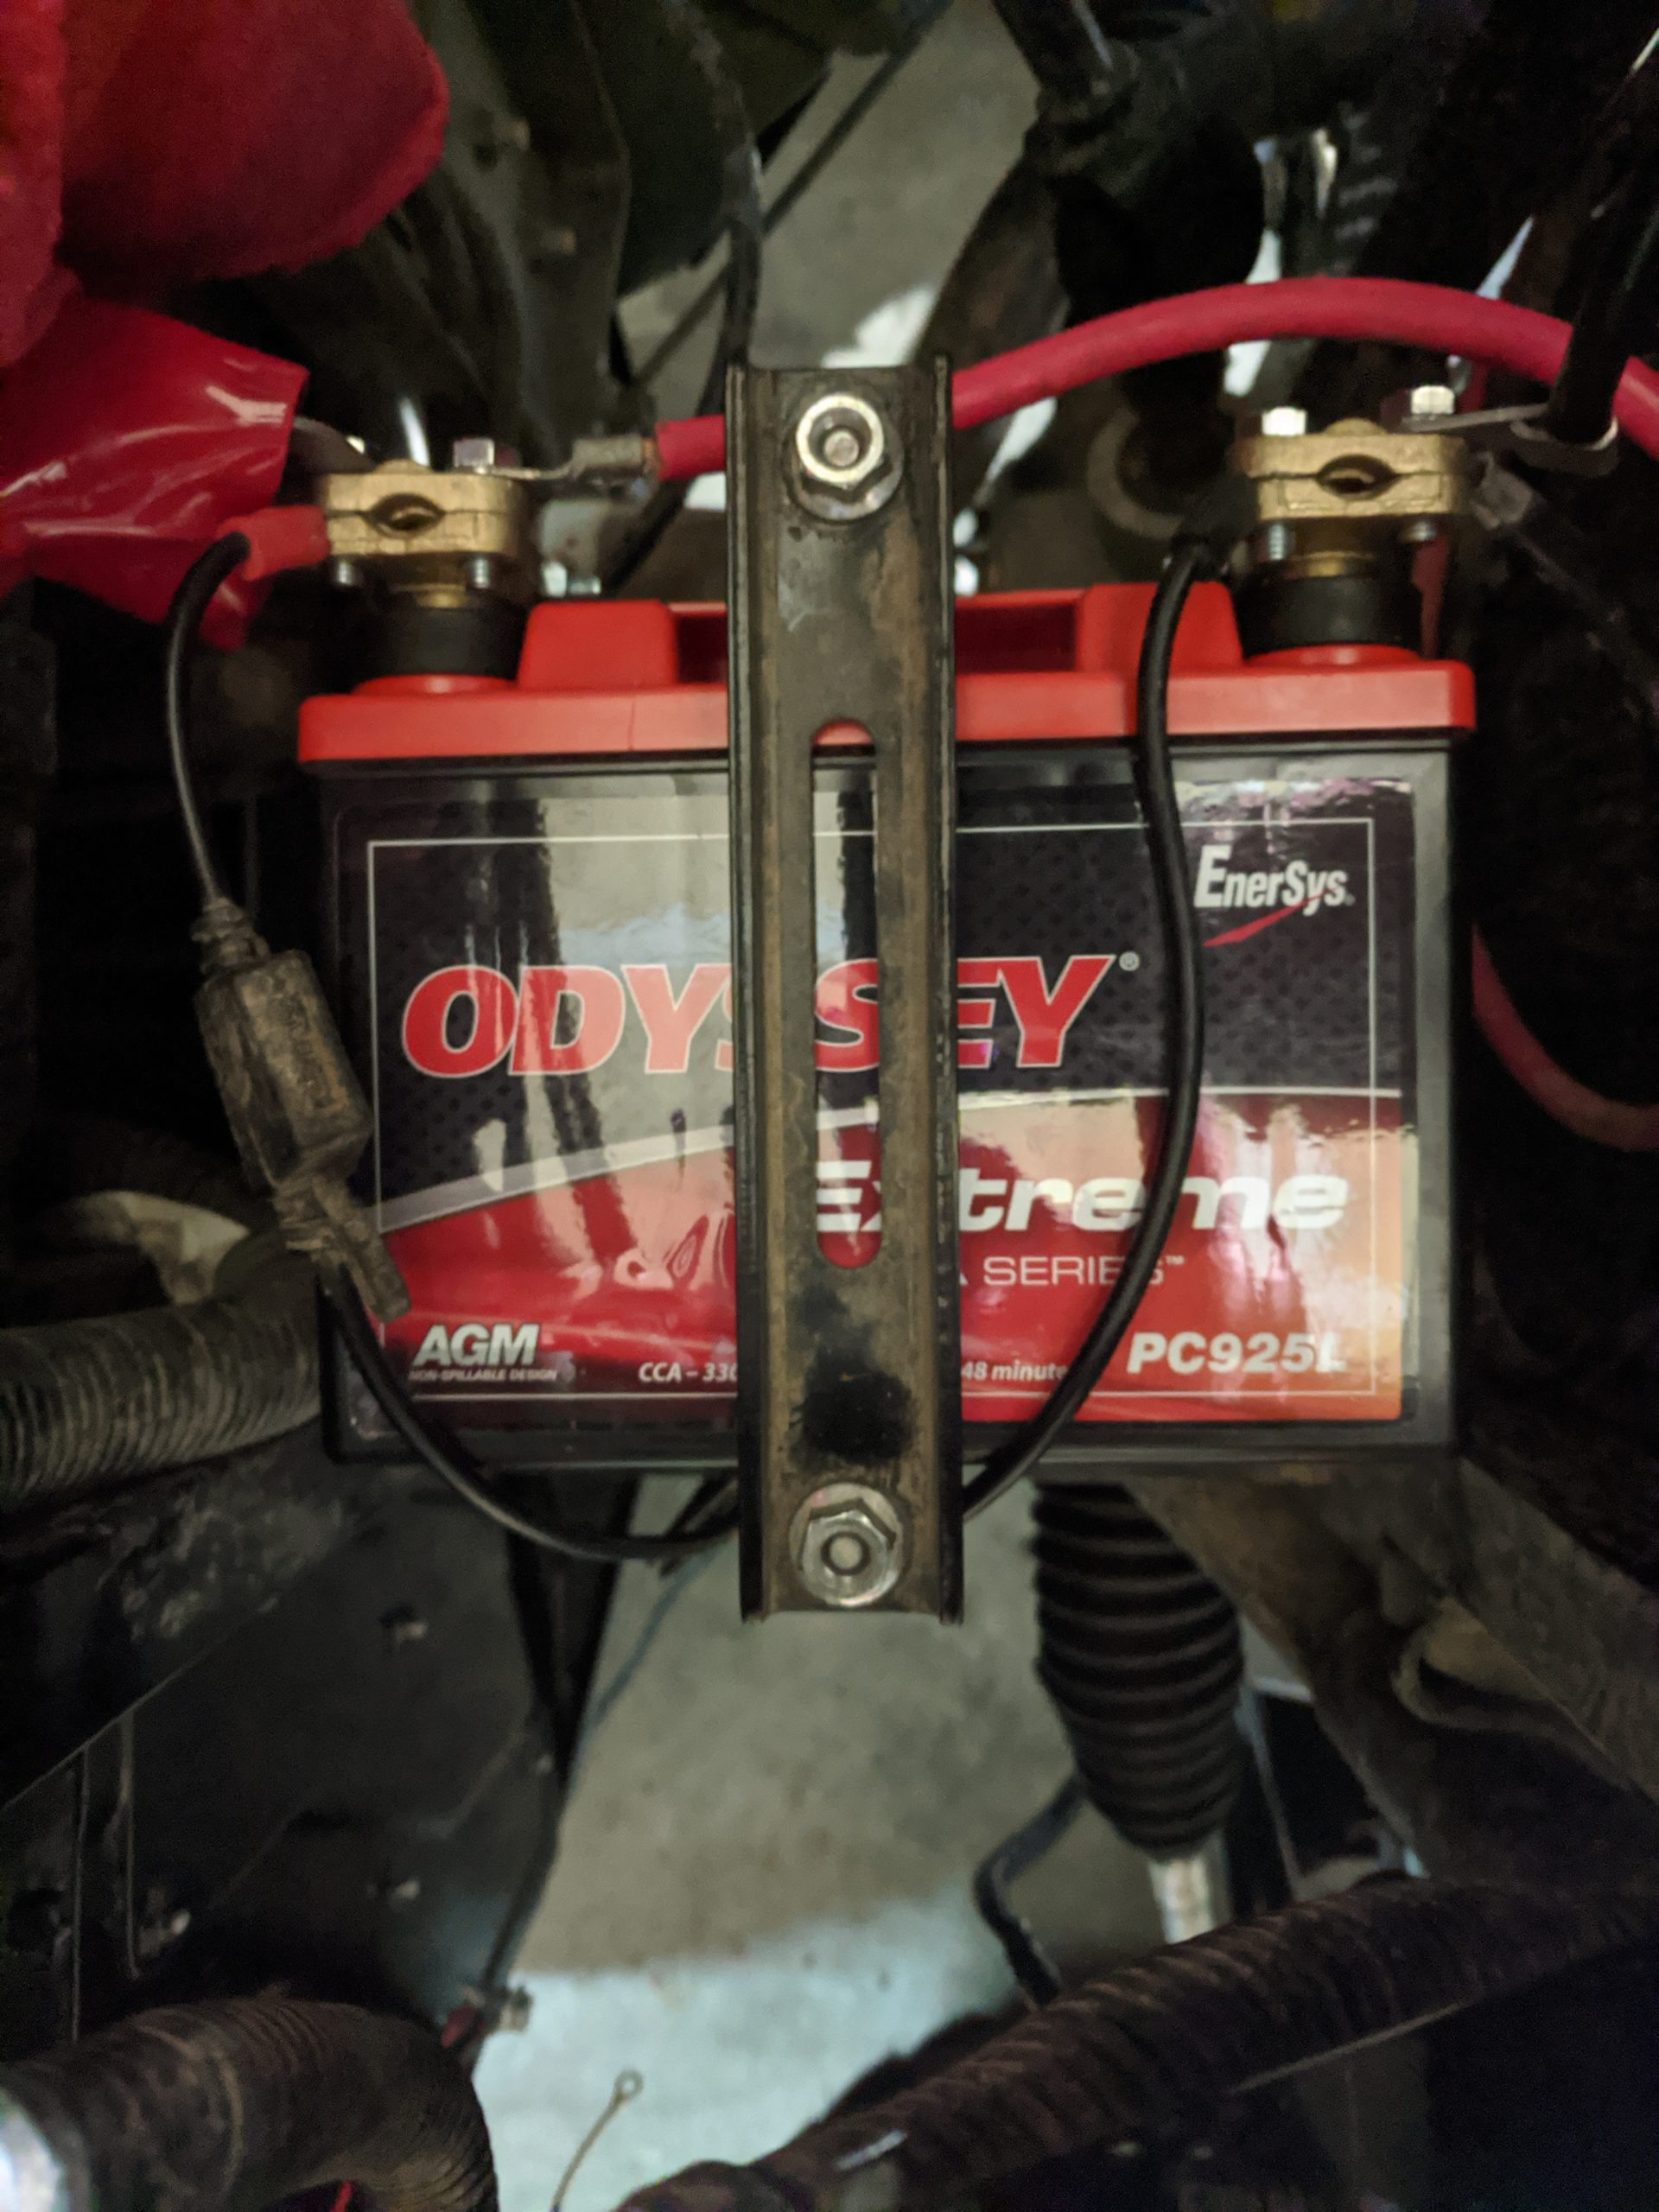 Odyssey battery replaced the stocker